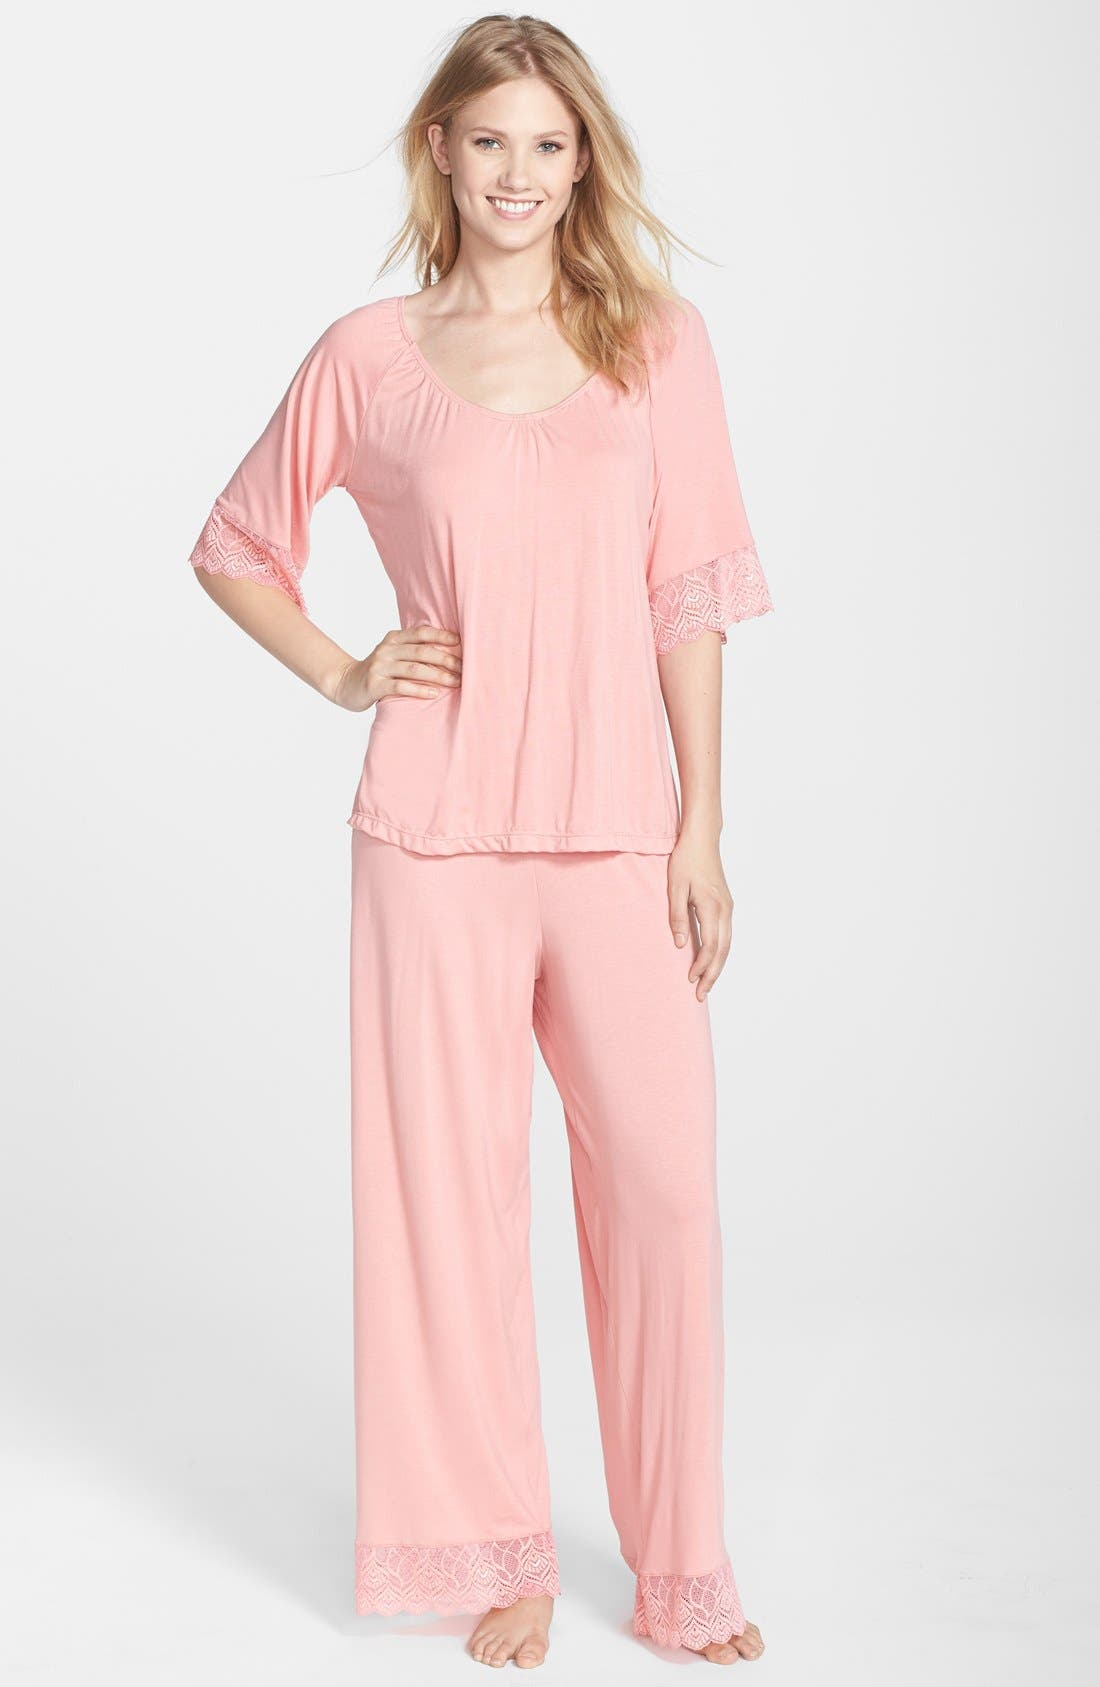 Alternate Image 1 Selected - Belabumbum 'Tallulah' Maternity Tunic & Pants